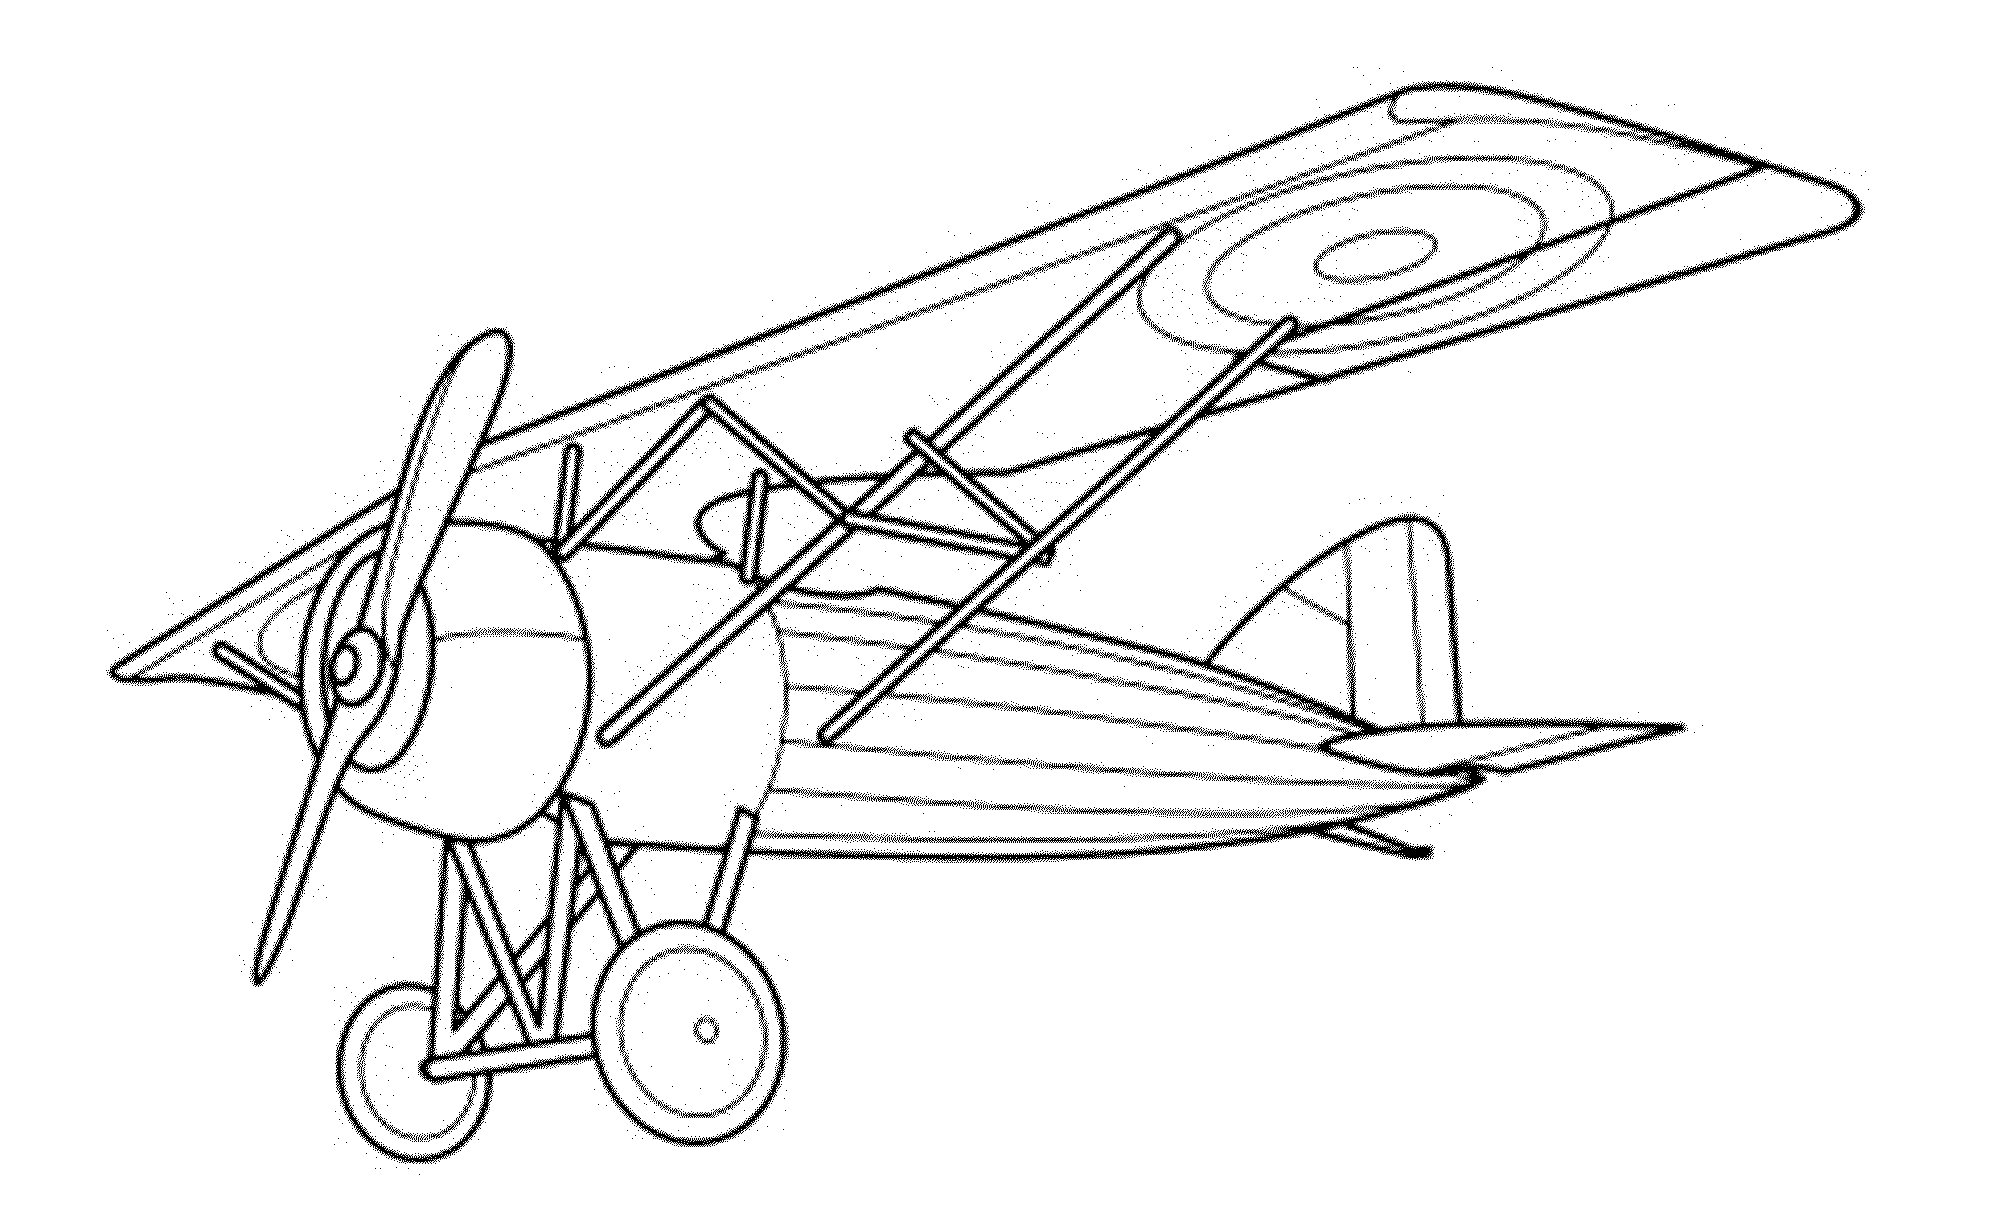 plane coloring sheets front airplane coloring page wecoloringpagecom plane sheets coloring